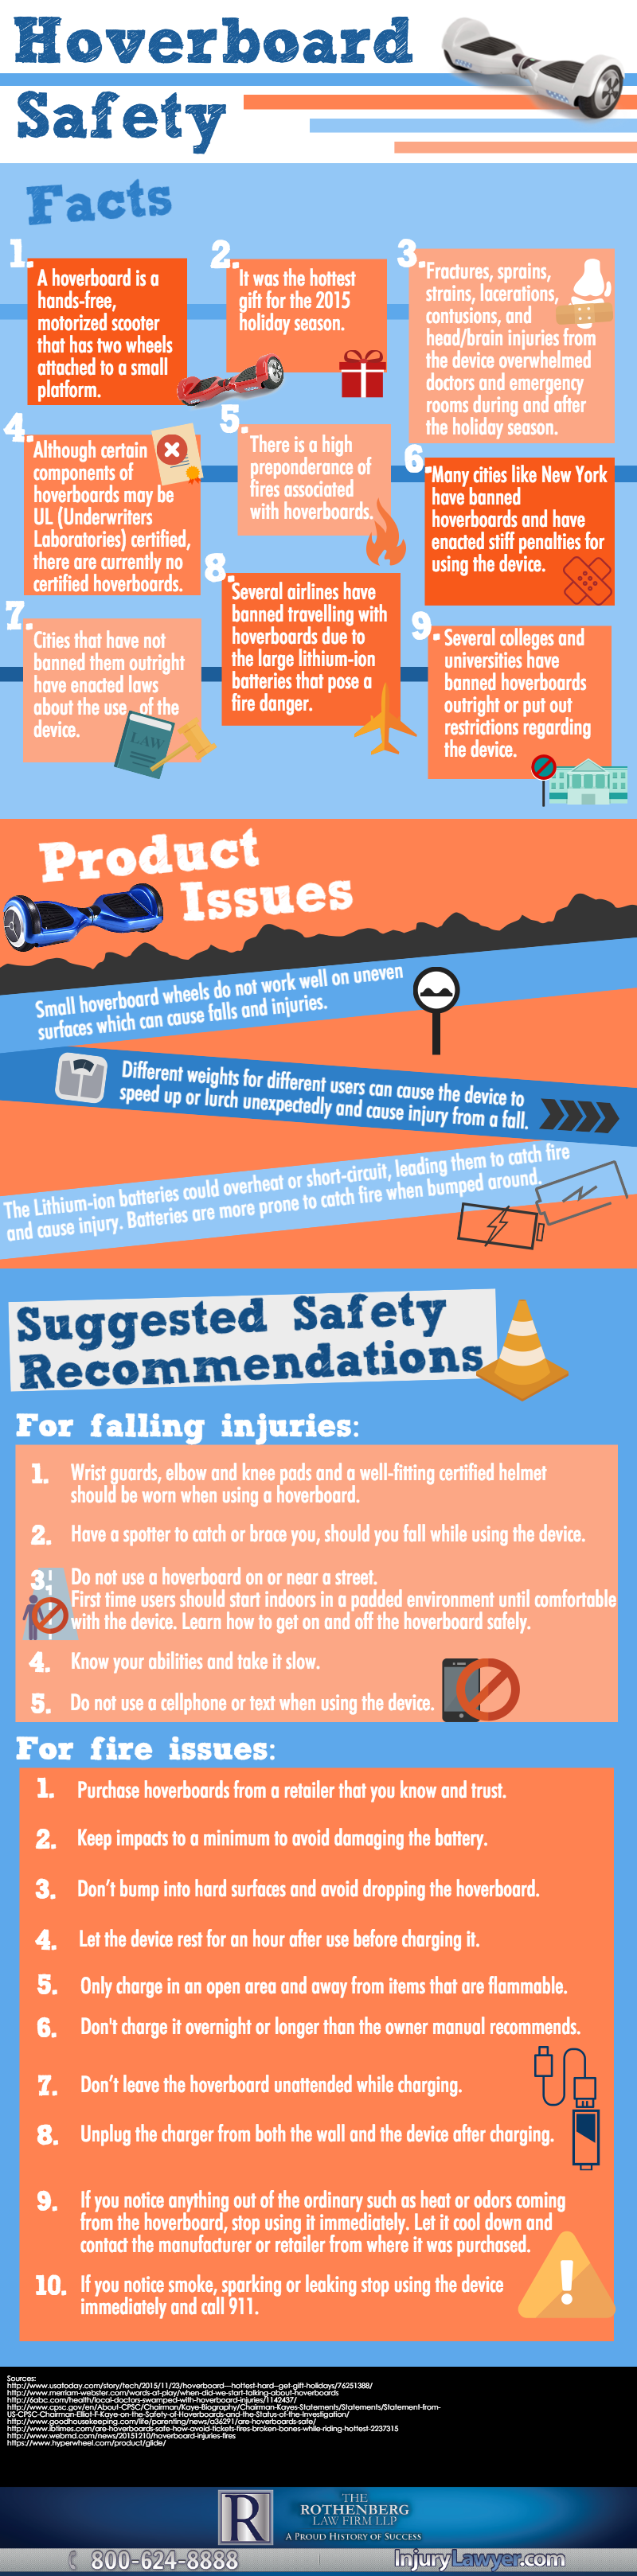 Hover board Safety Infographic